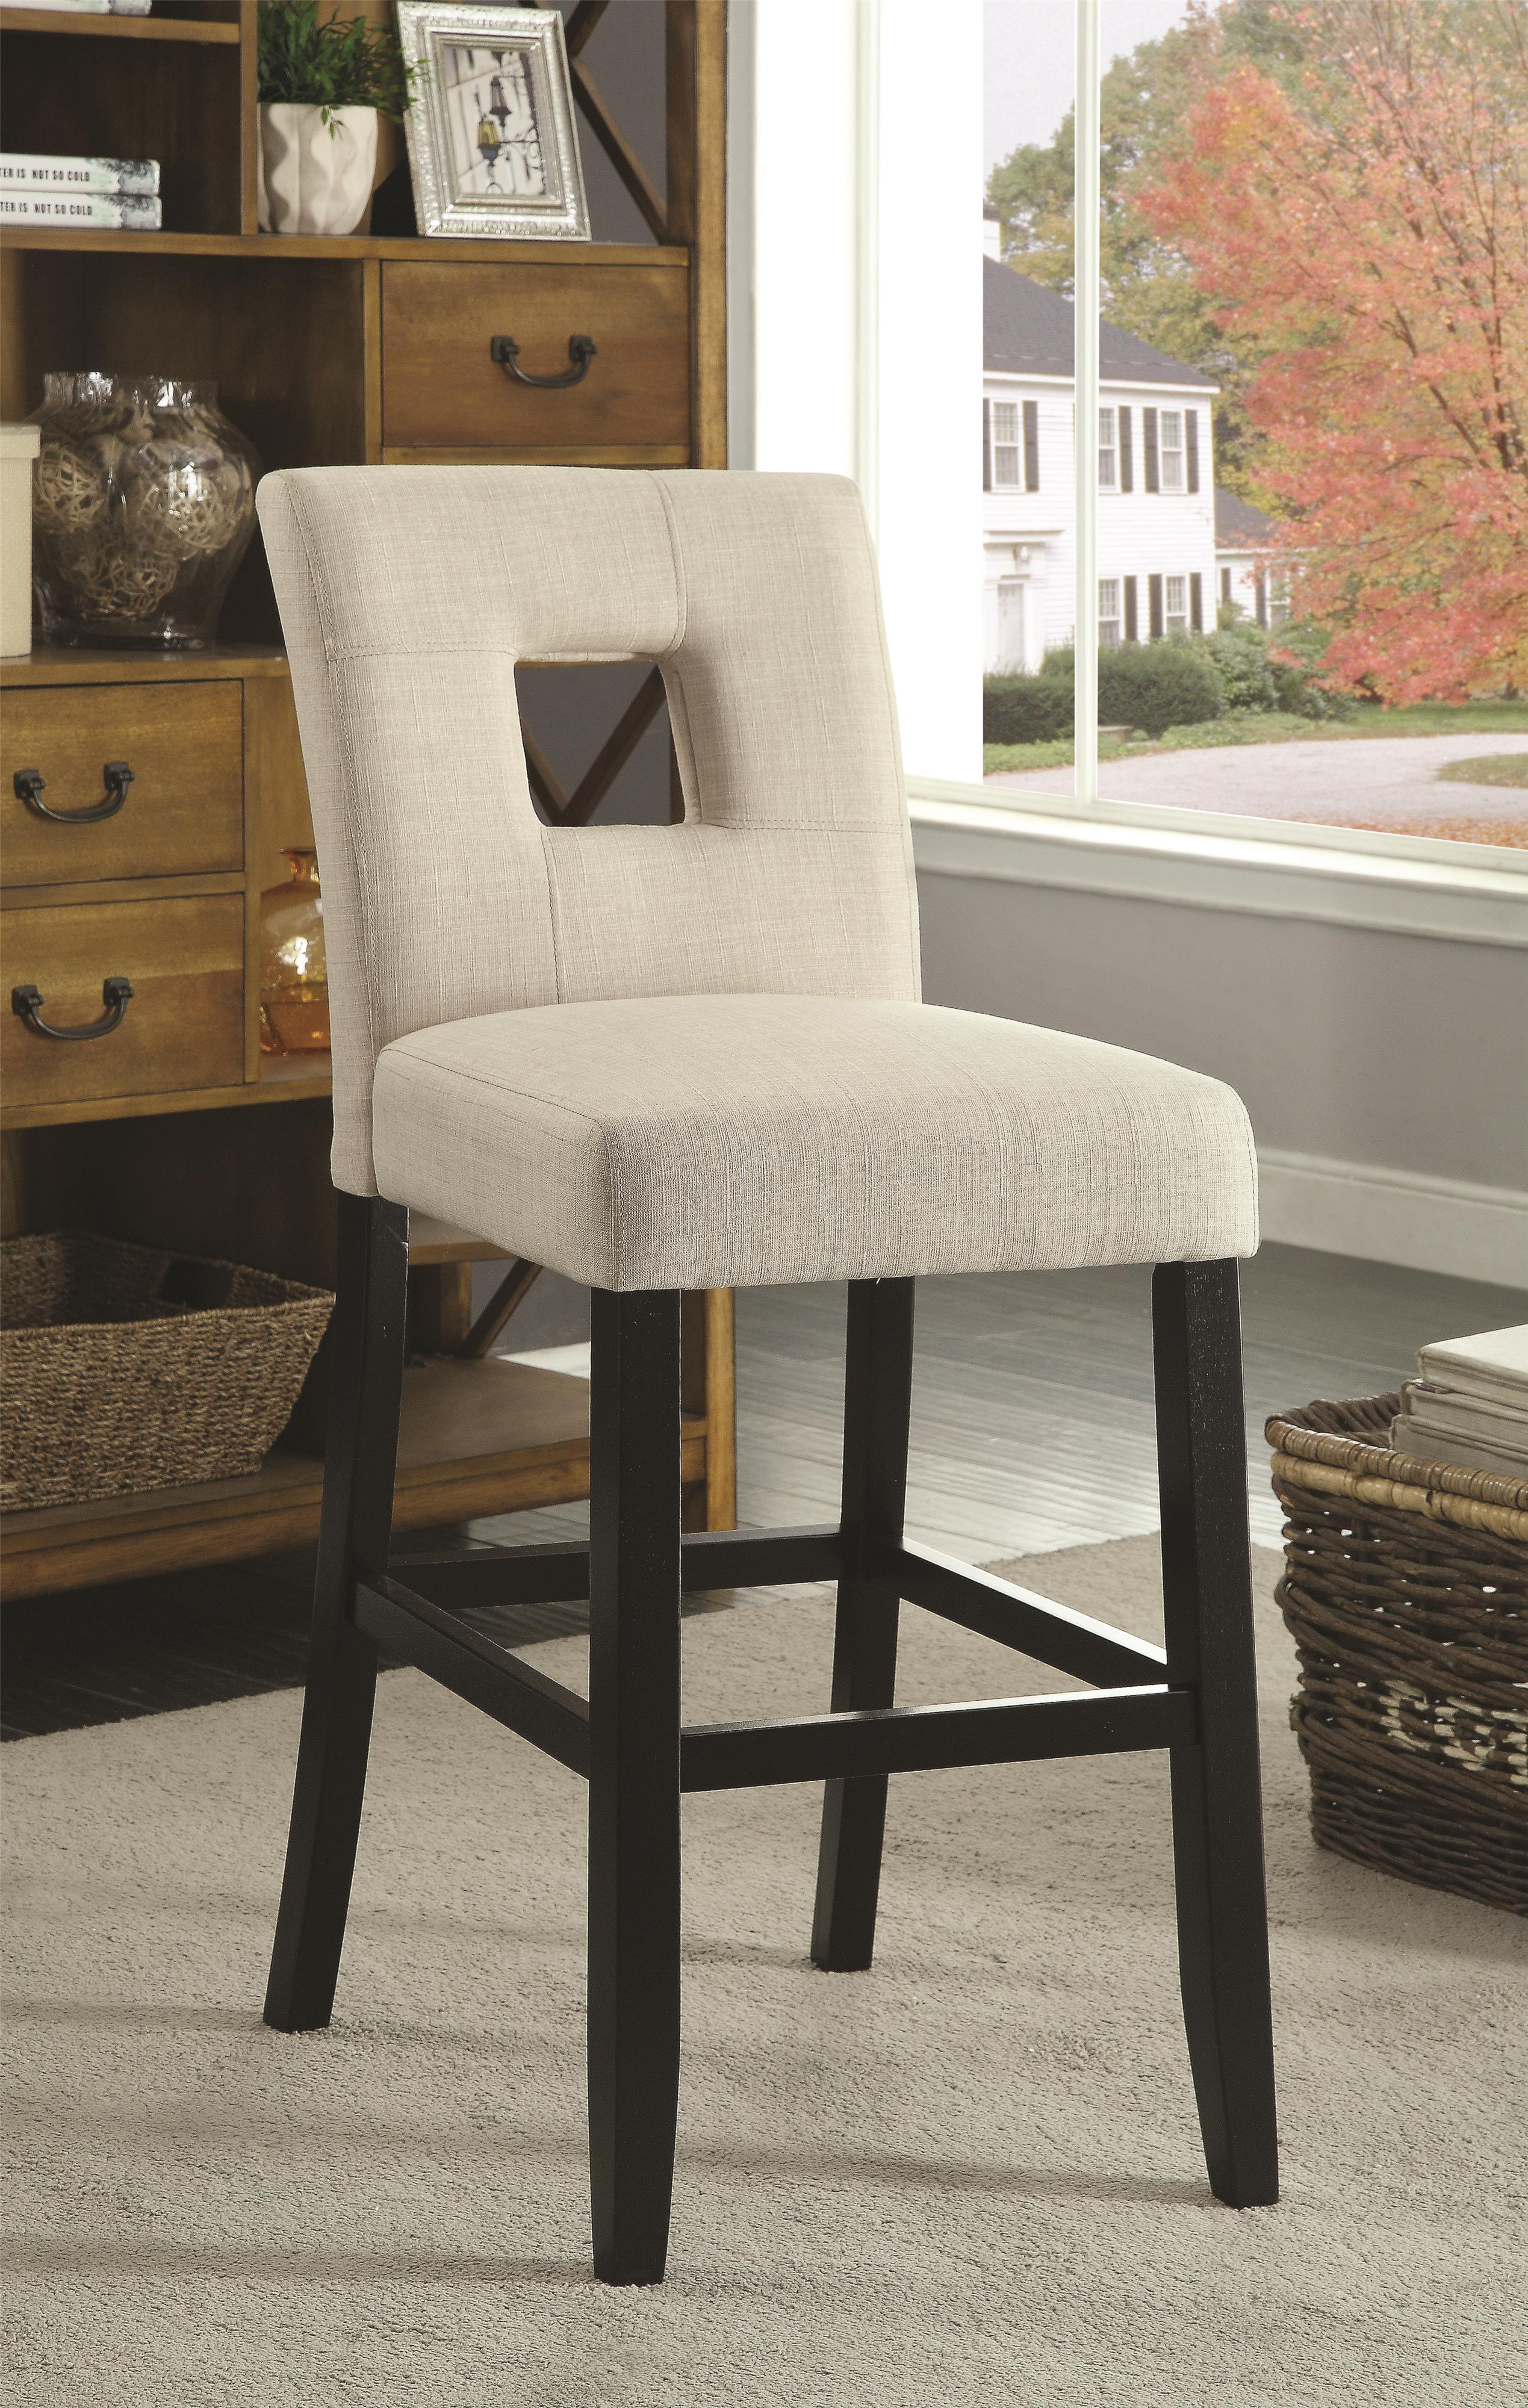 Andenne Counter Height Chair by Coaster at Lapeer Furniture & Mattress Center